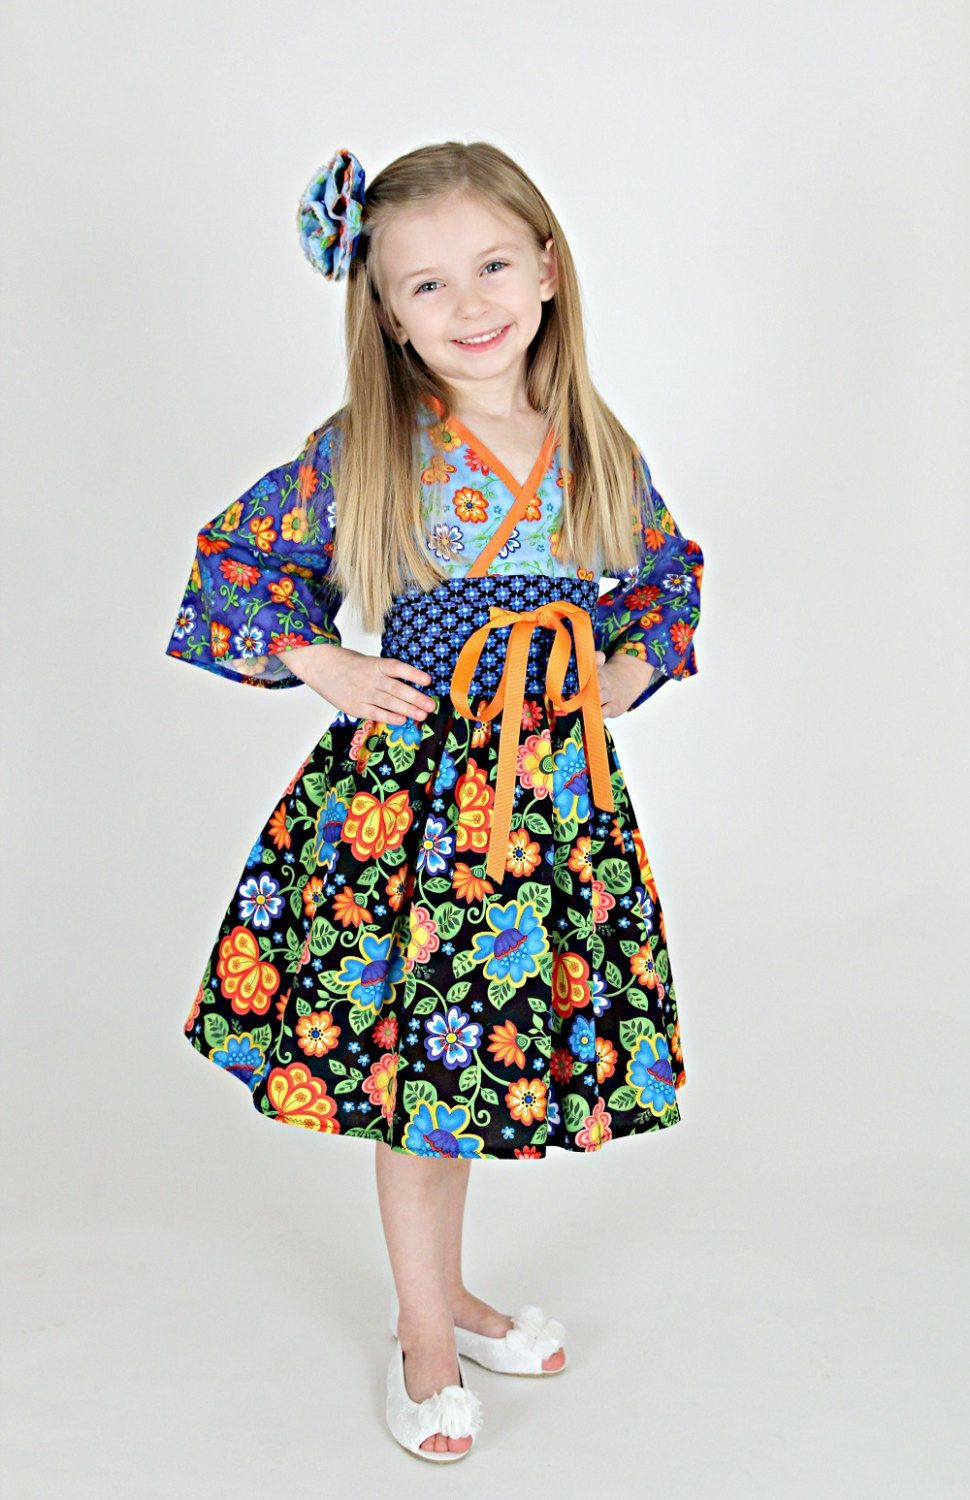 d44af5bae Royal Blue Dress - Girls Spring Dress - Preteen Dress - Birthday Party Dress  - Easter Dress - Preteen - Toddler Clothes - 12 mos to 14 yrs